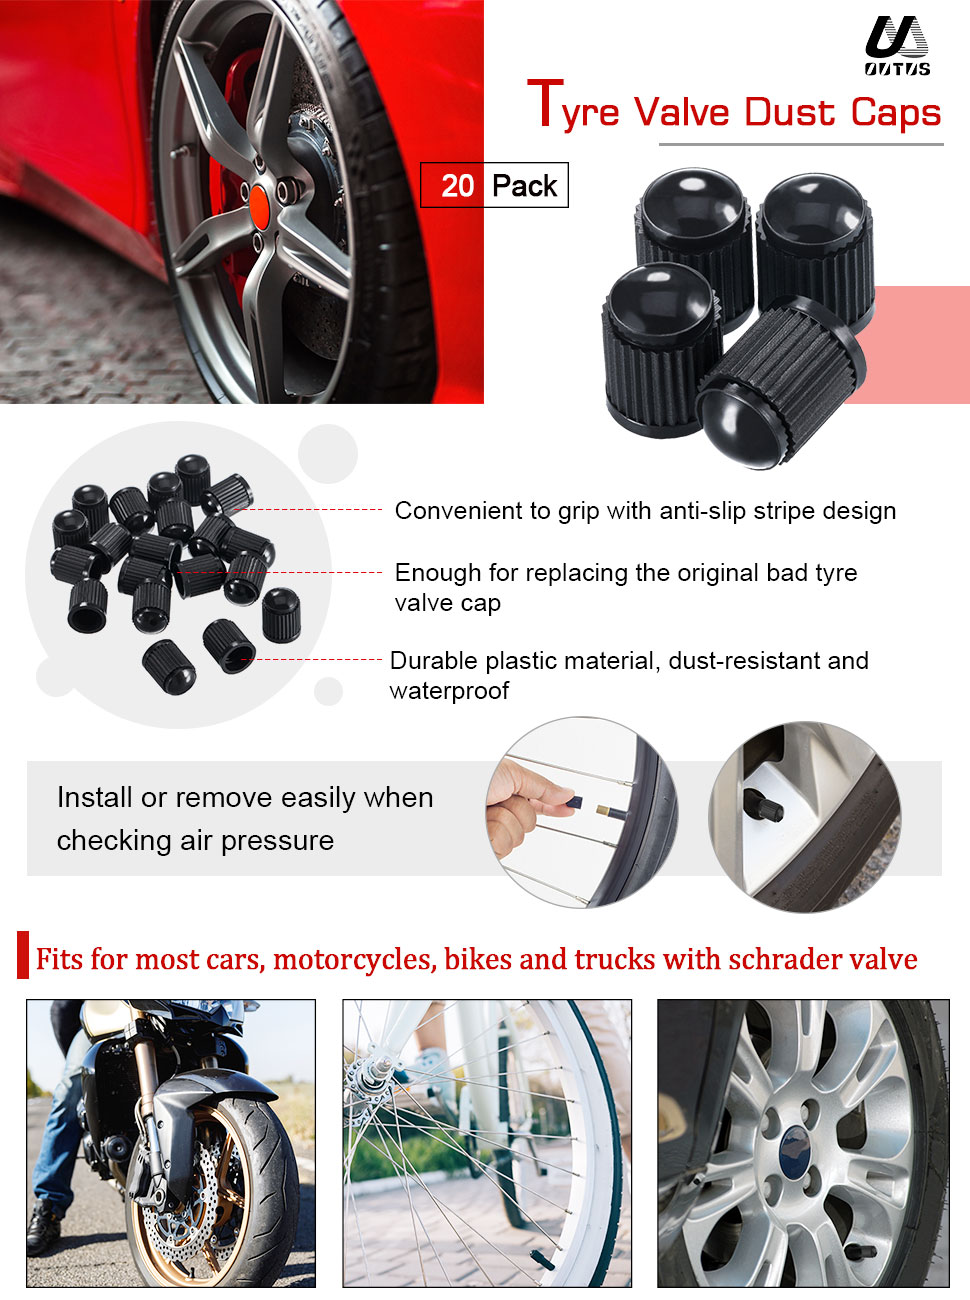 kesoto Motorcycles Bicycles Car Van Valve Cap Dust Caps Protectors for Presta Valve